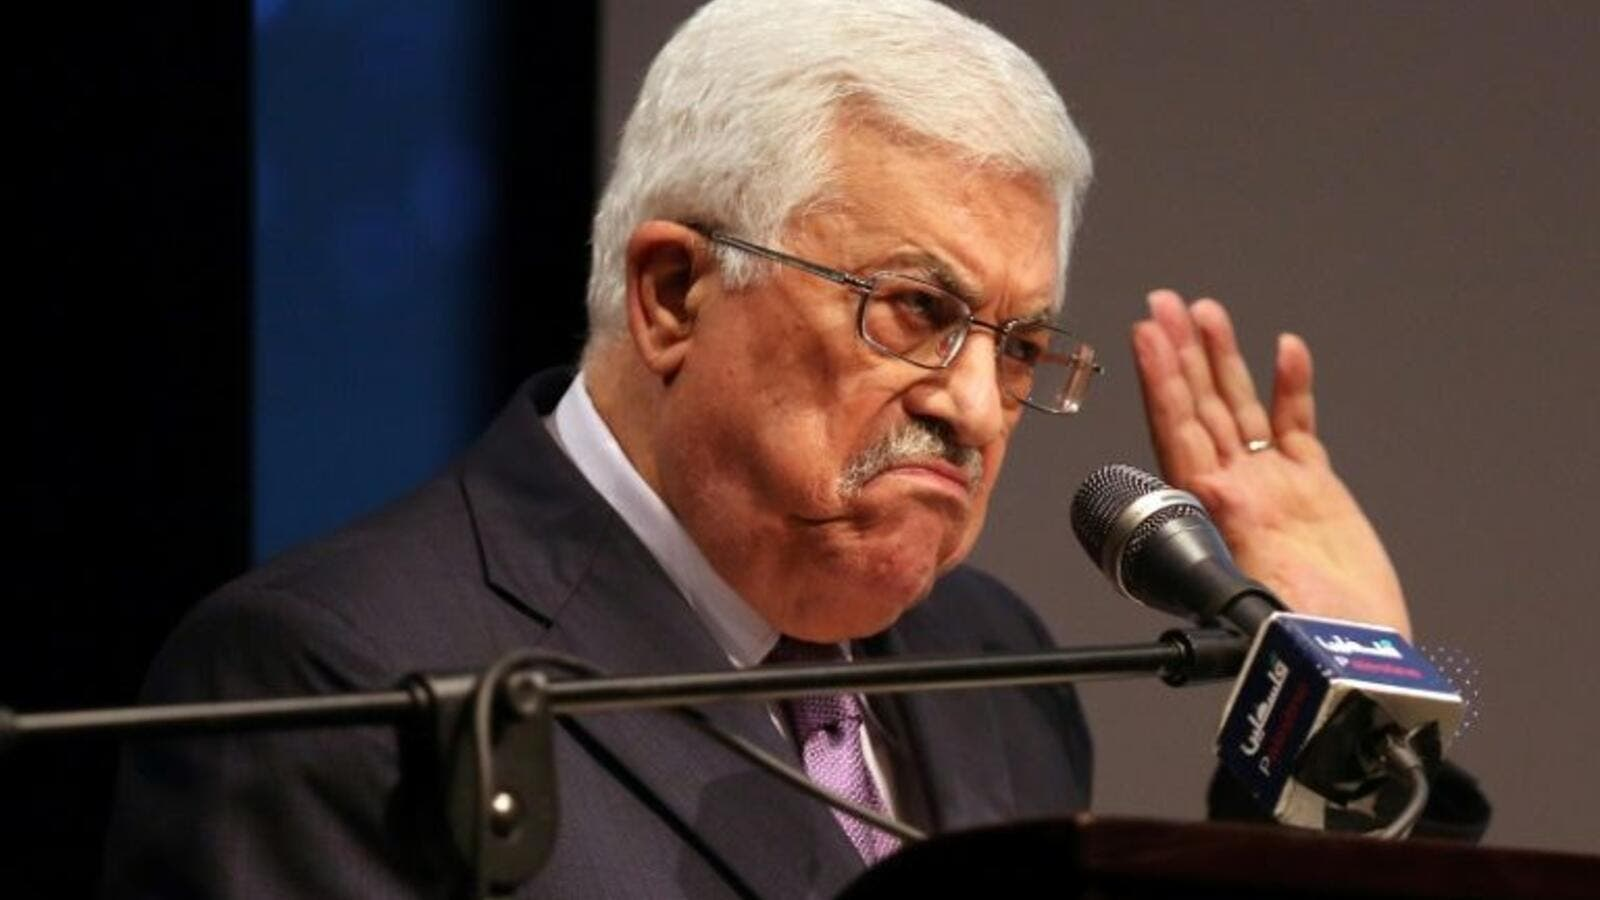 Palestinian president Mahmoud Abbas. (AFP/ File Photo)